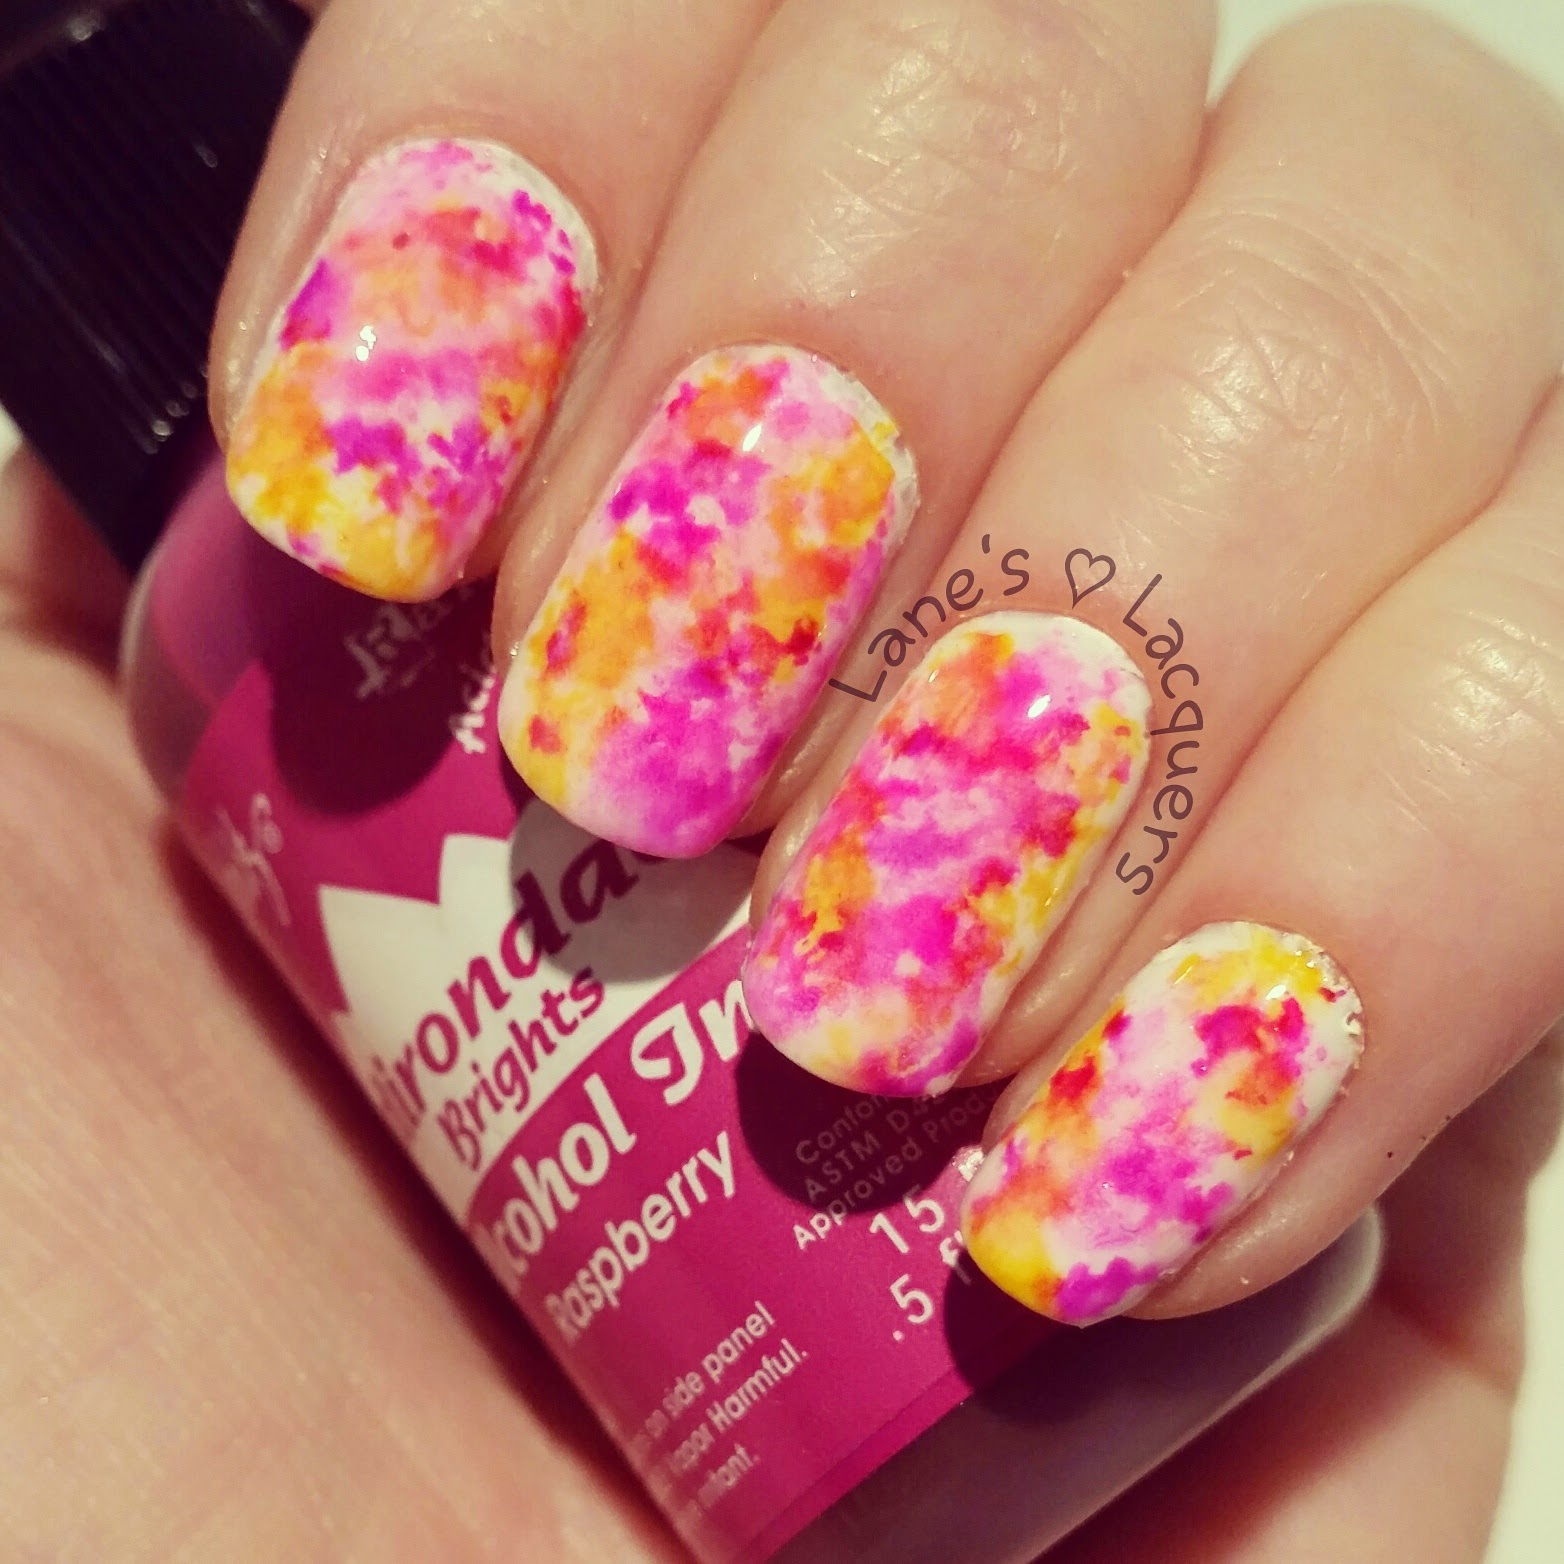 alcohol-ink-pink-purple-yellow-nail-art (2)